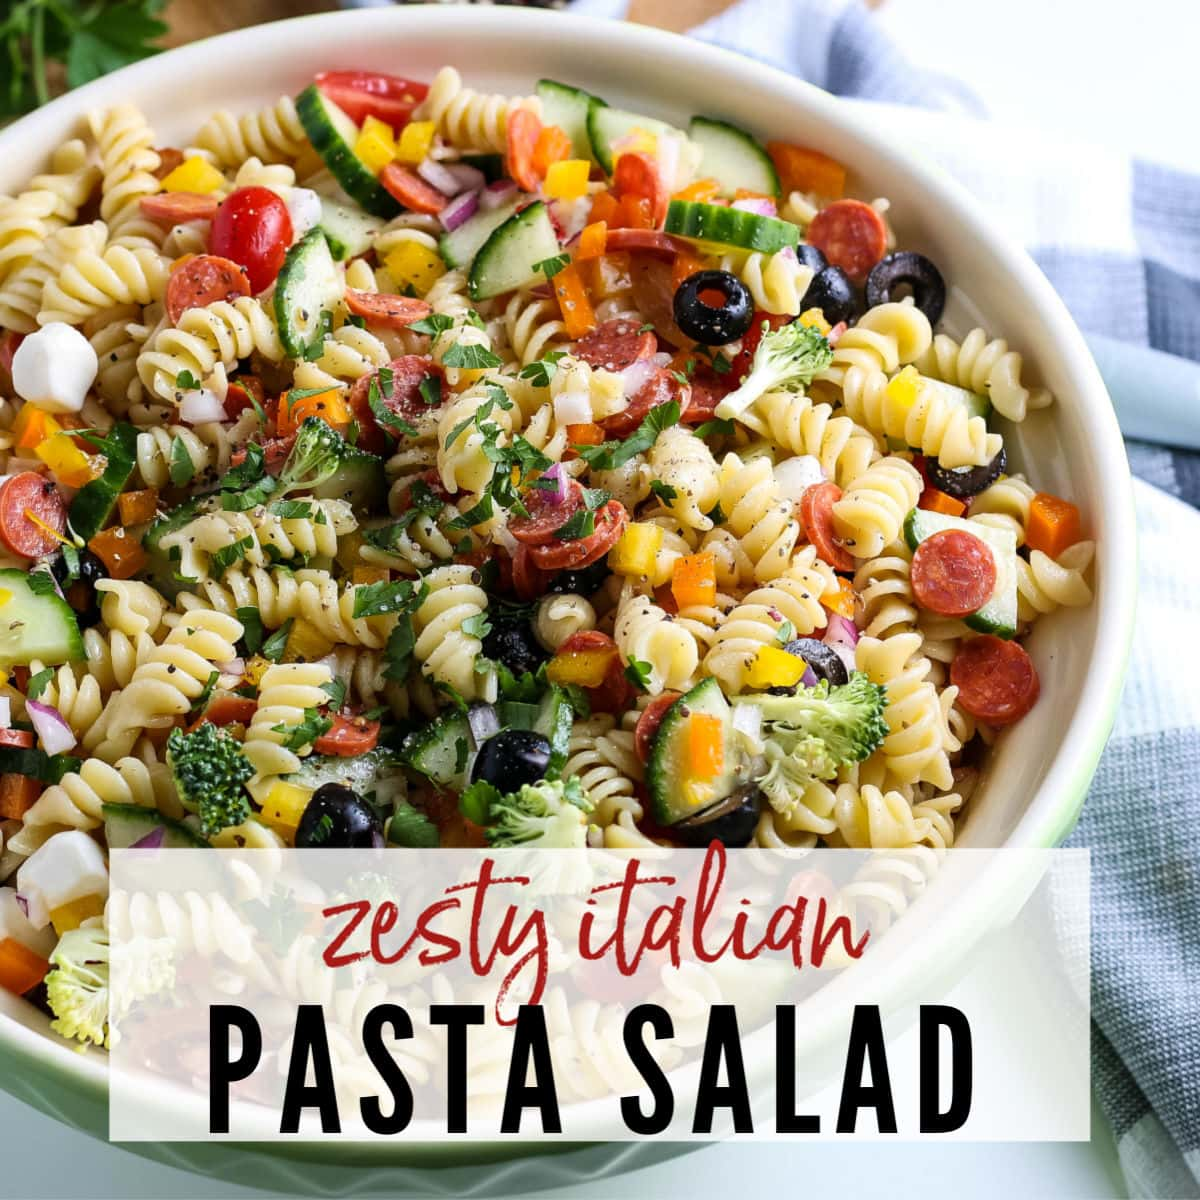 White bowl filled with pasta salad with fresh veggies, cheese & pepperoni